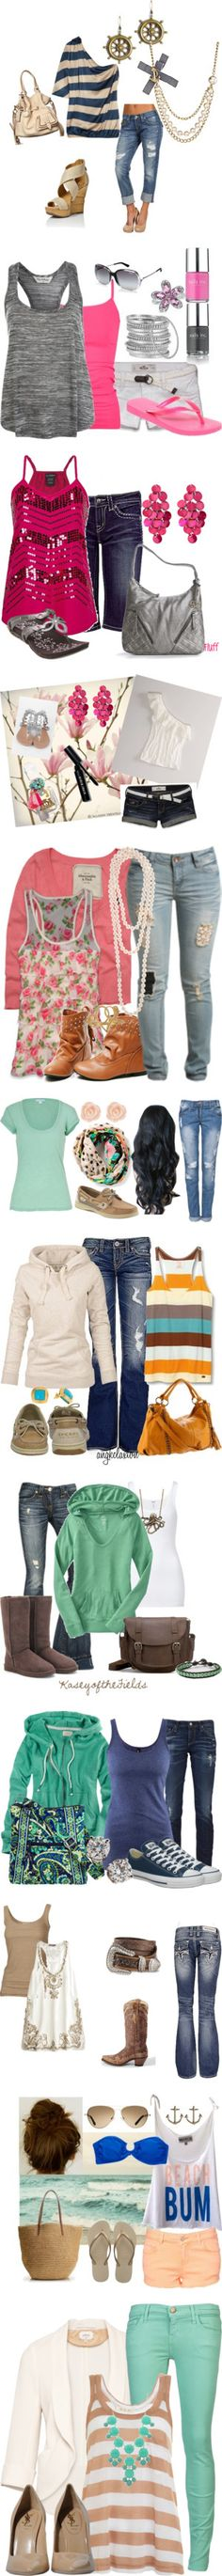 """Summertime"" by caitlen98 on Polyvore"